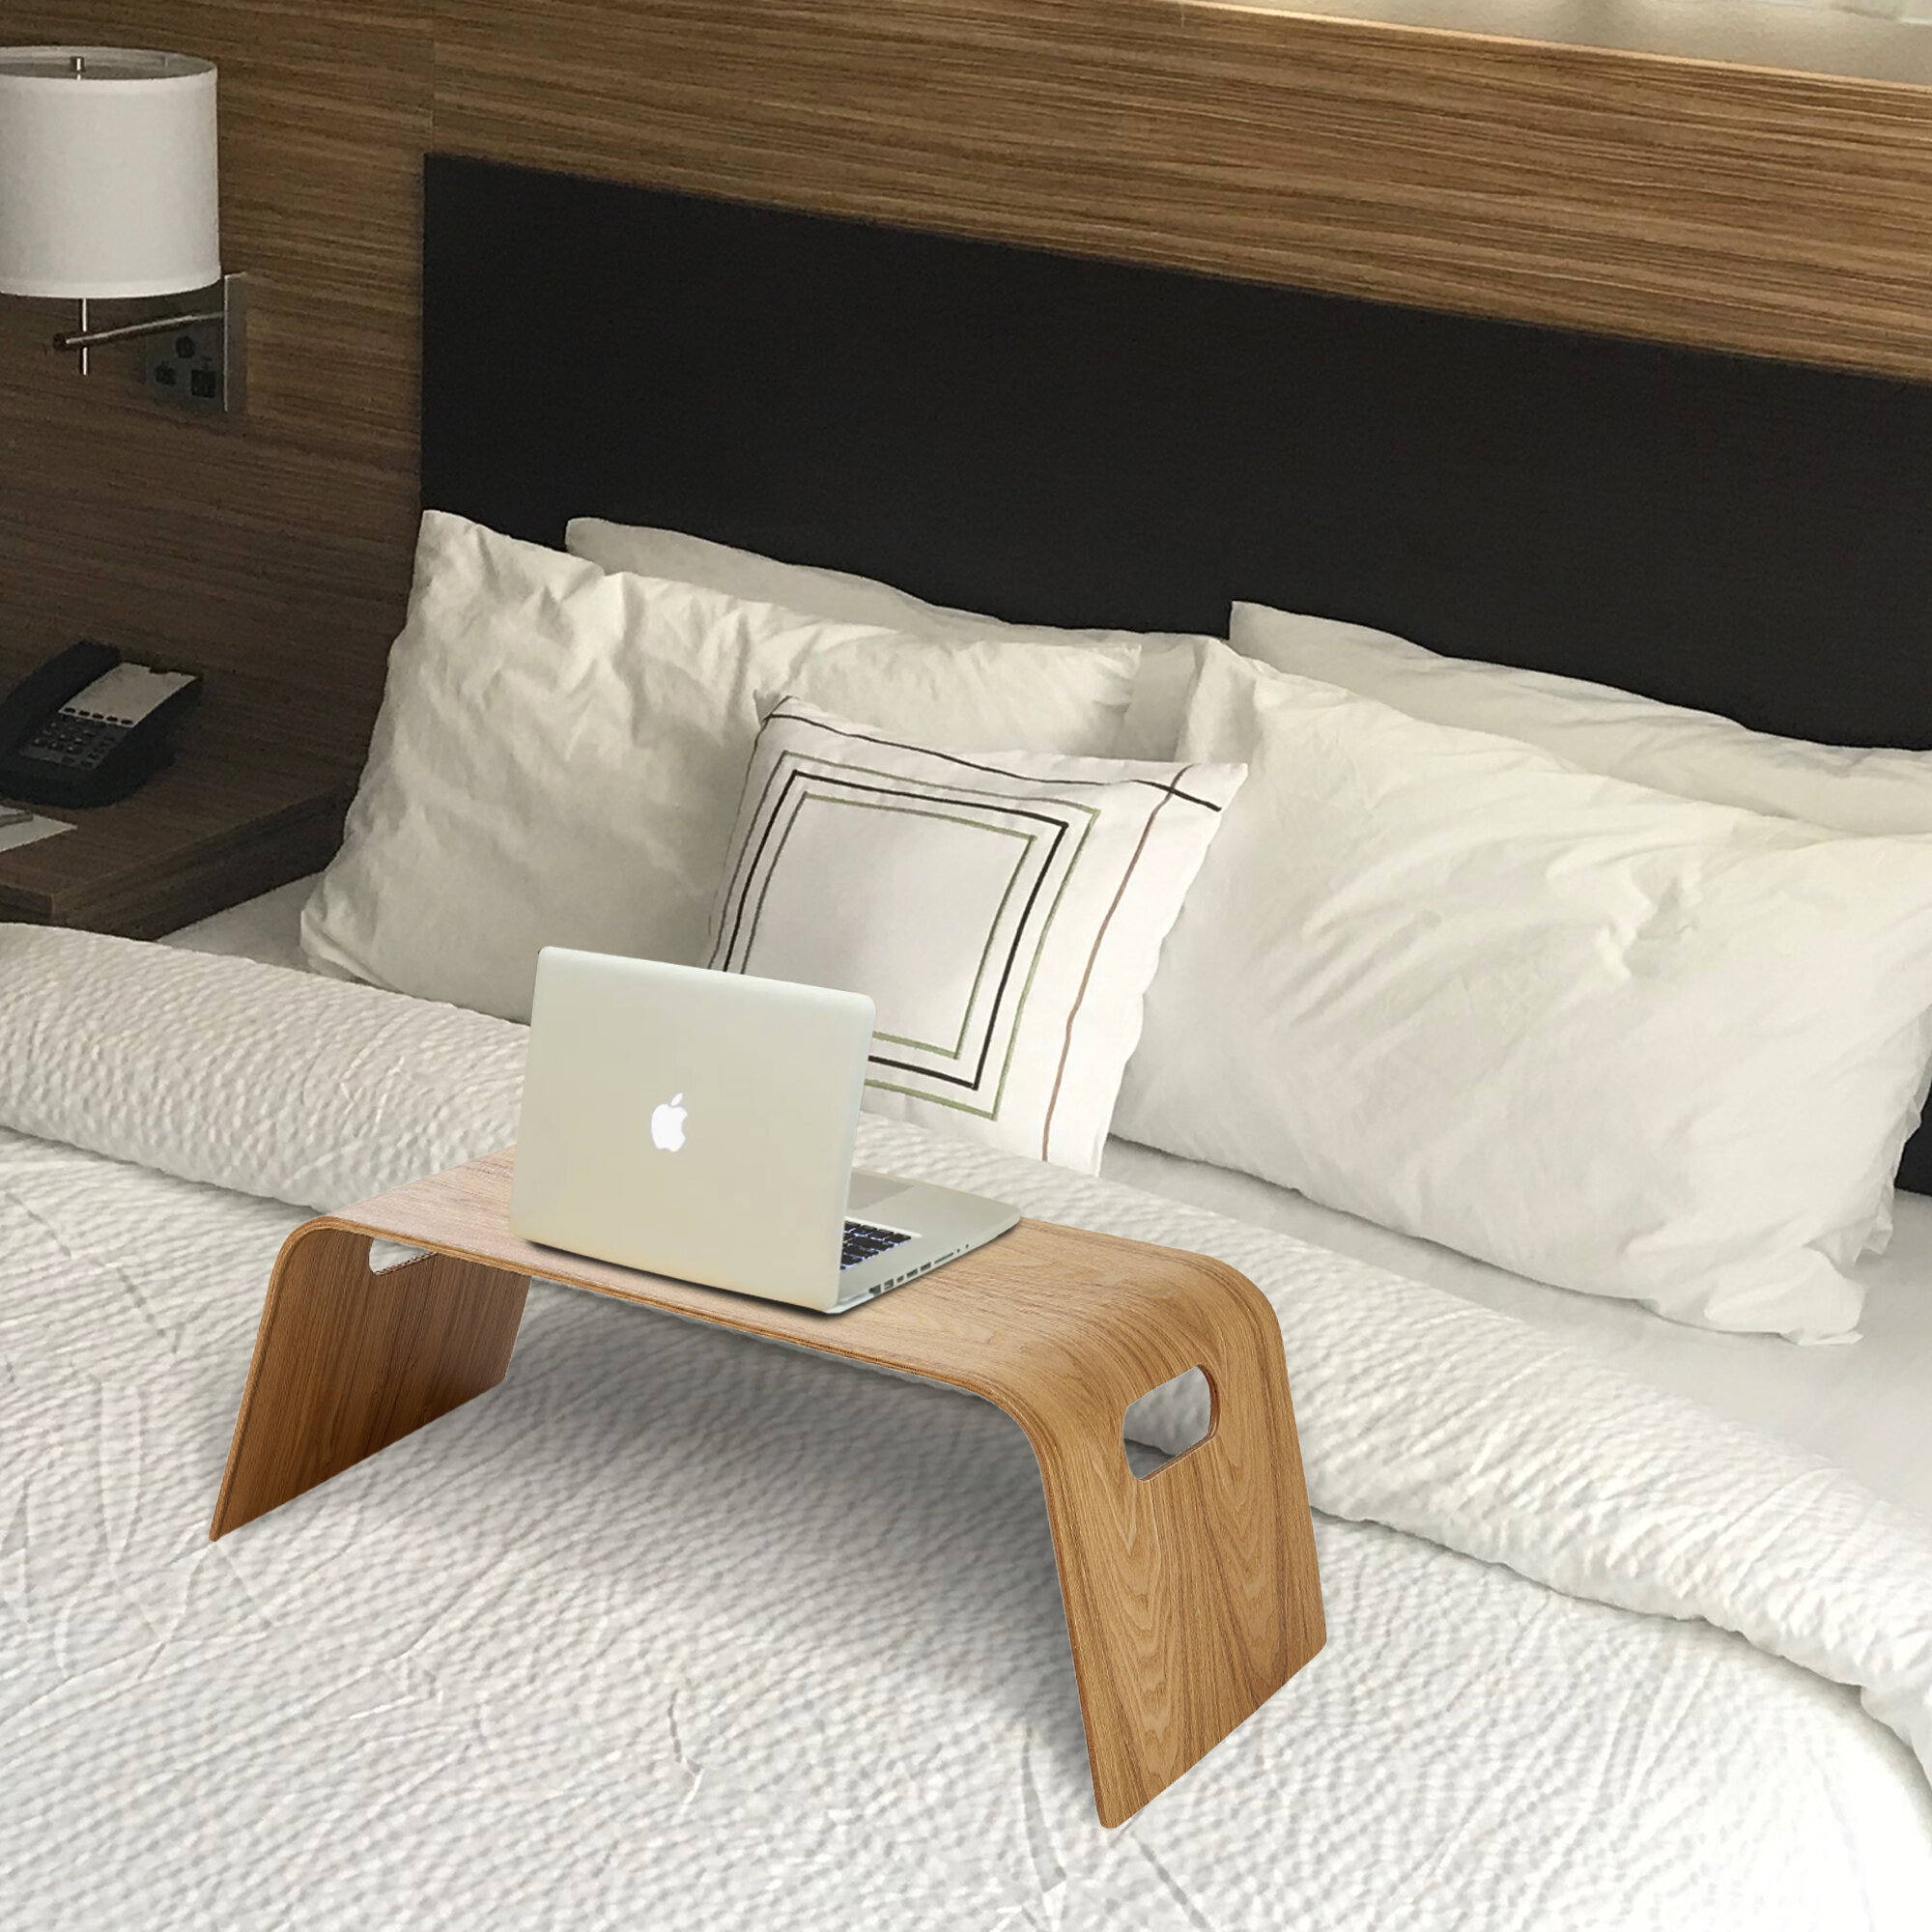 Copenhagen Bed Tray IMPULSE Natural 9060-1